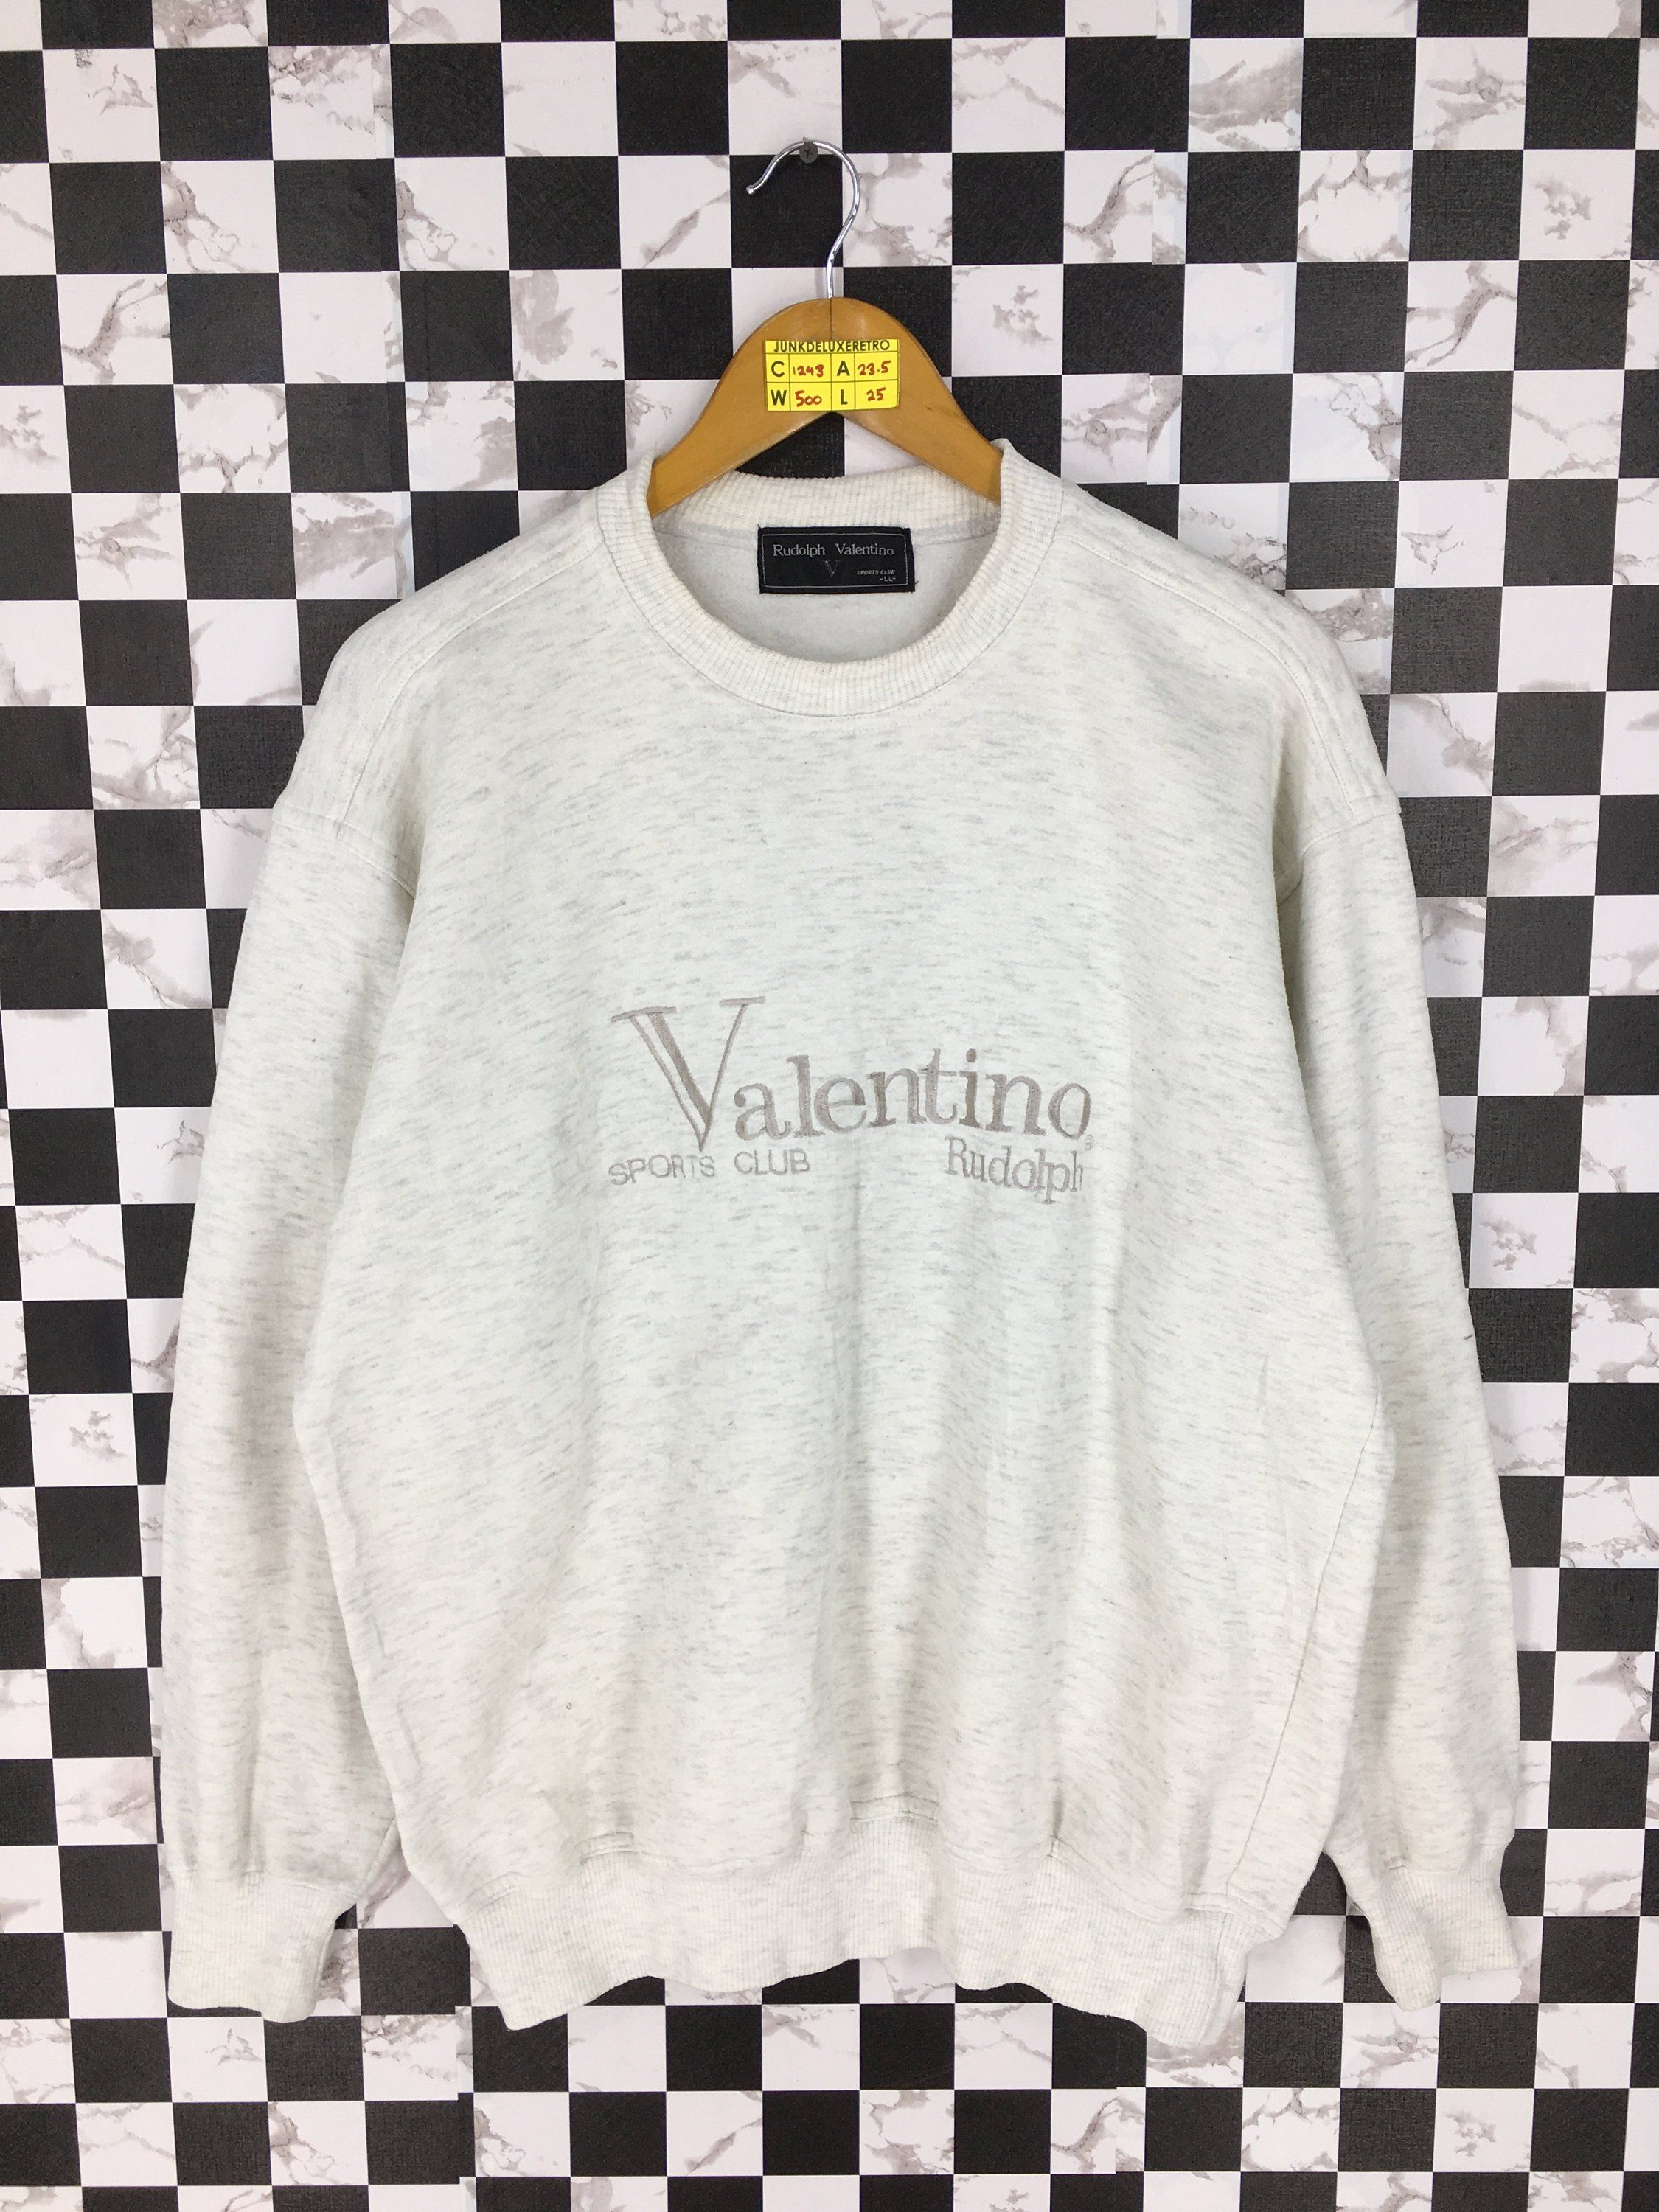 b8bd48a7c4c77 RUDOLPH VALENTINO Italy Jumper White Large Vintage 90's Italian ...